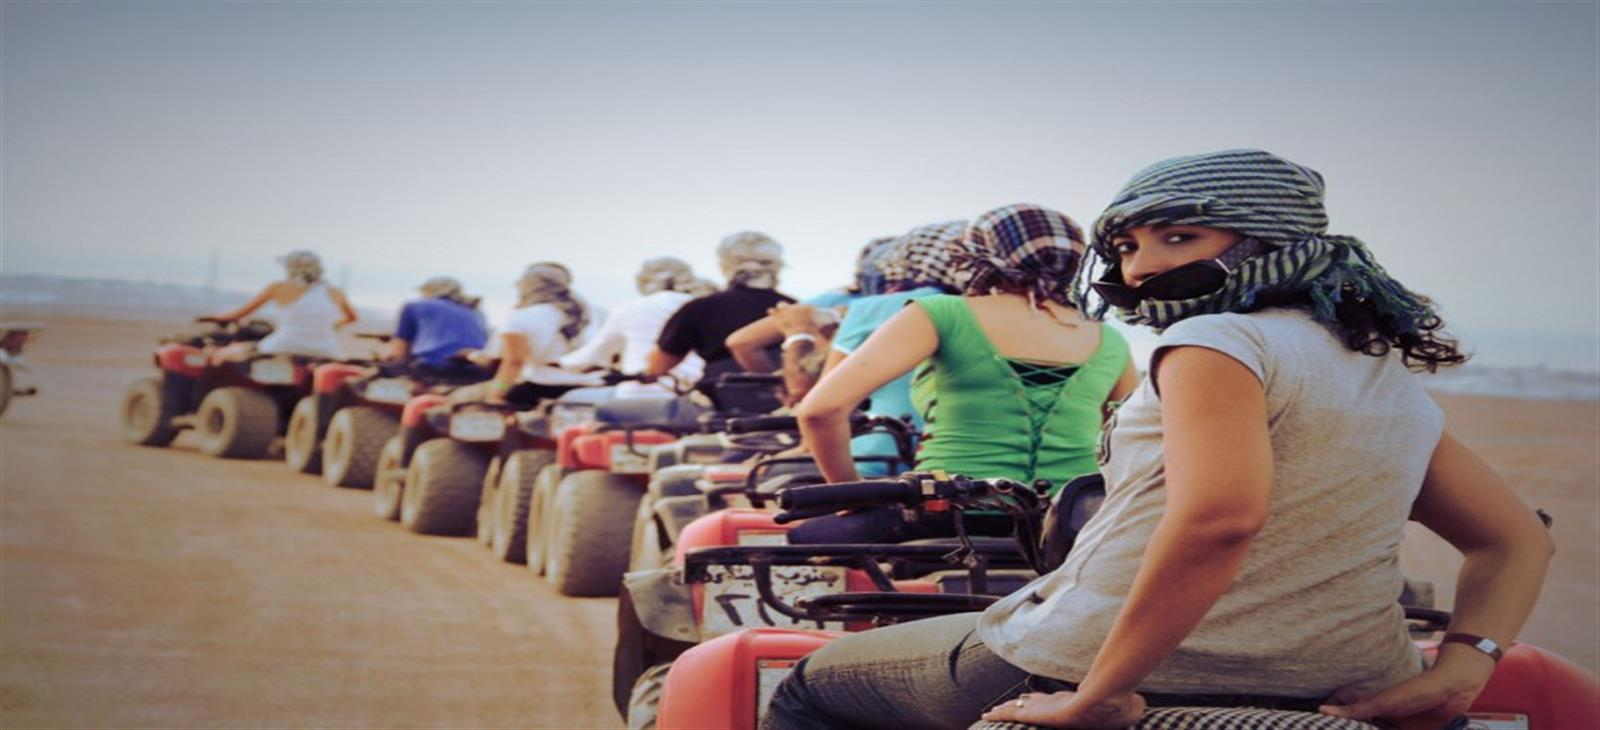 luxor quad bike safari